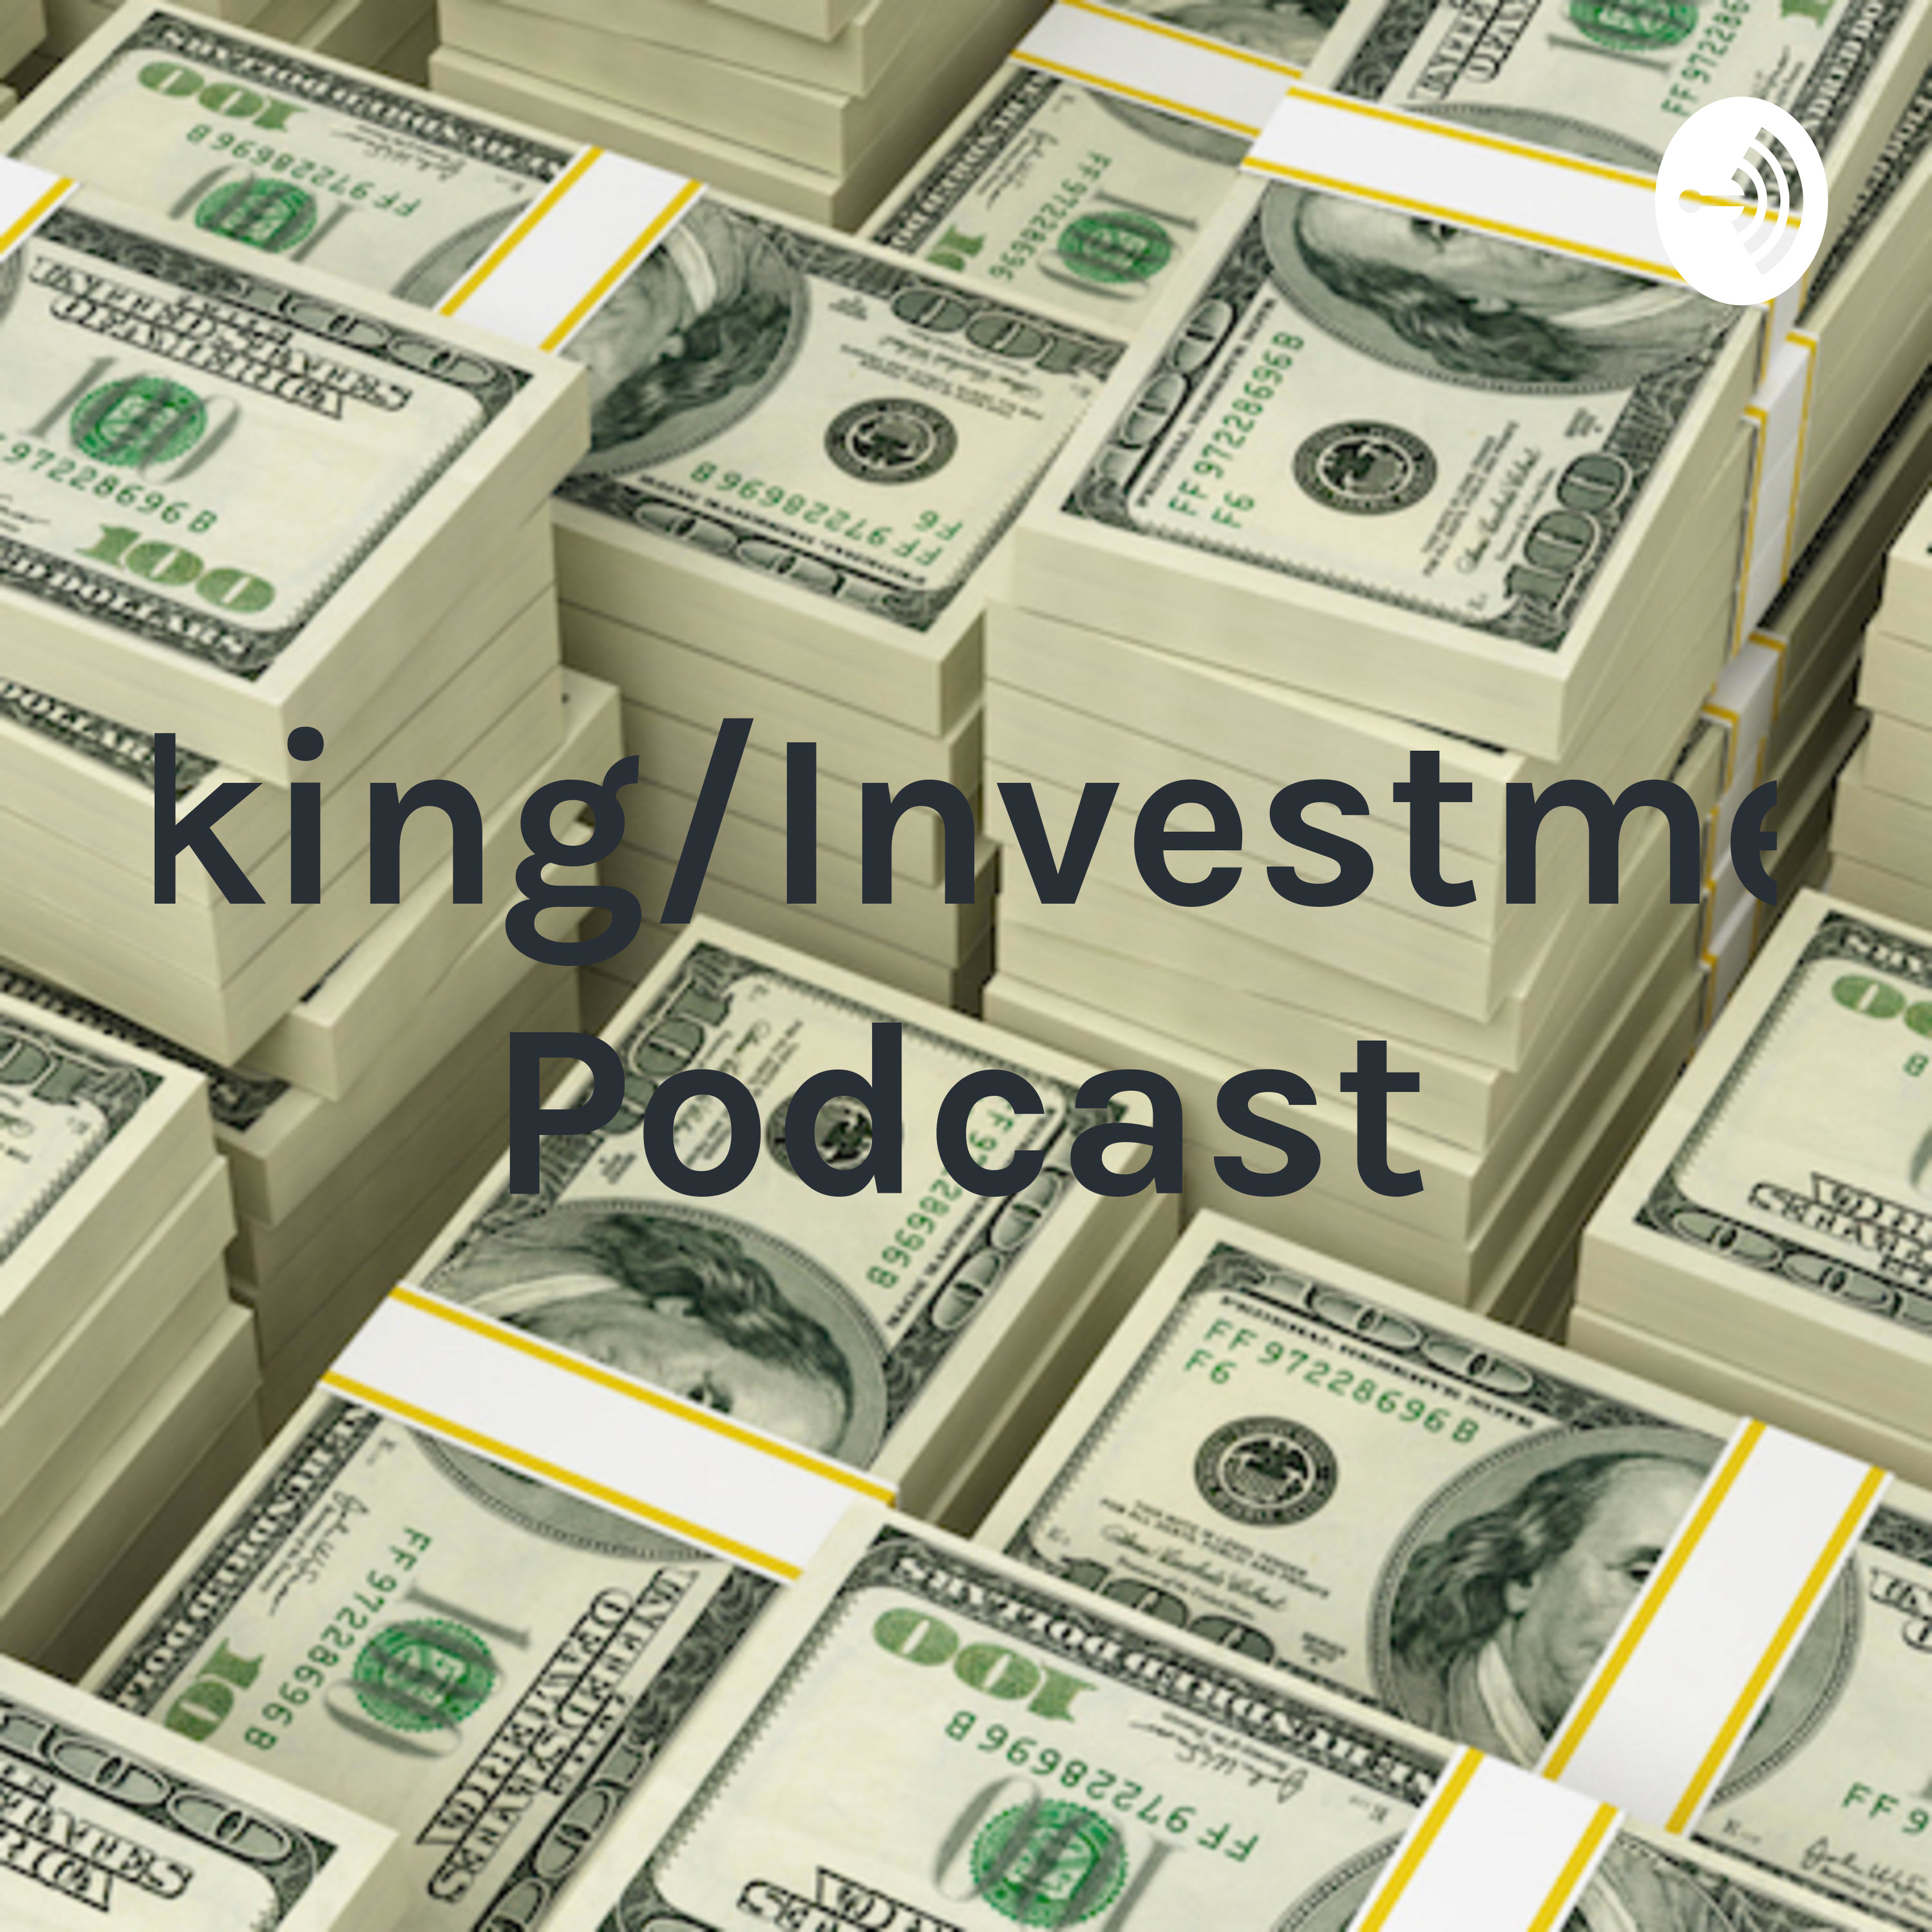 Banking/Investing 1 Podcast